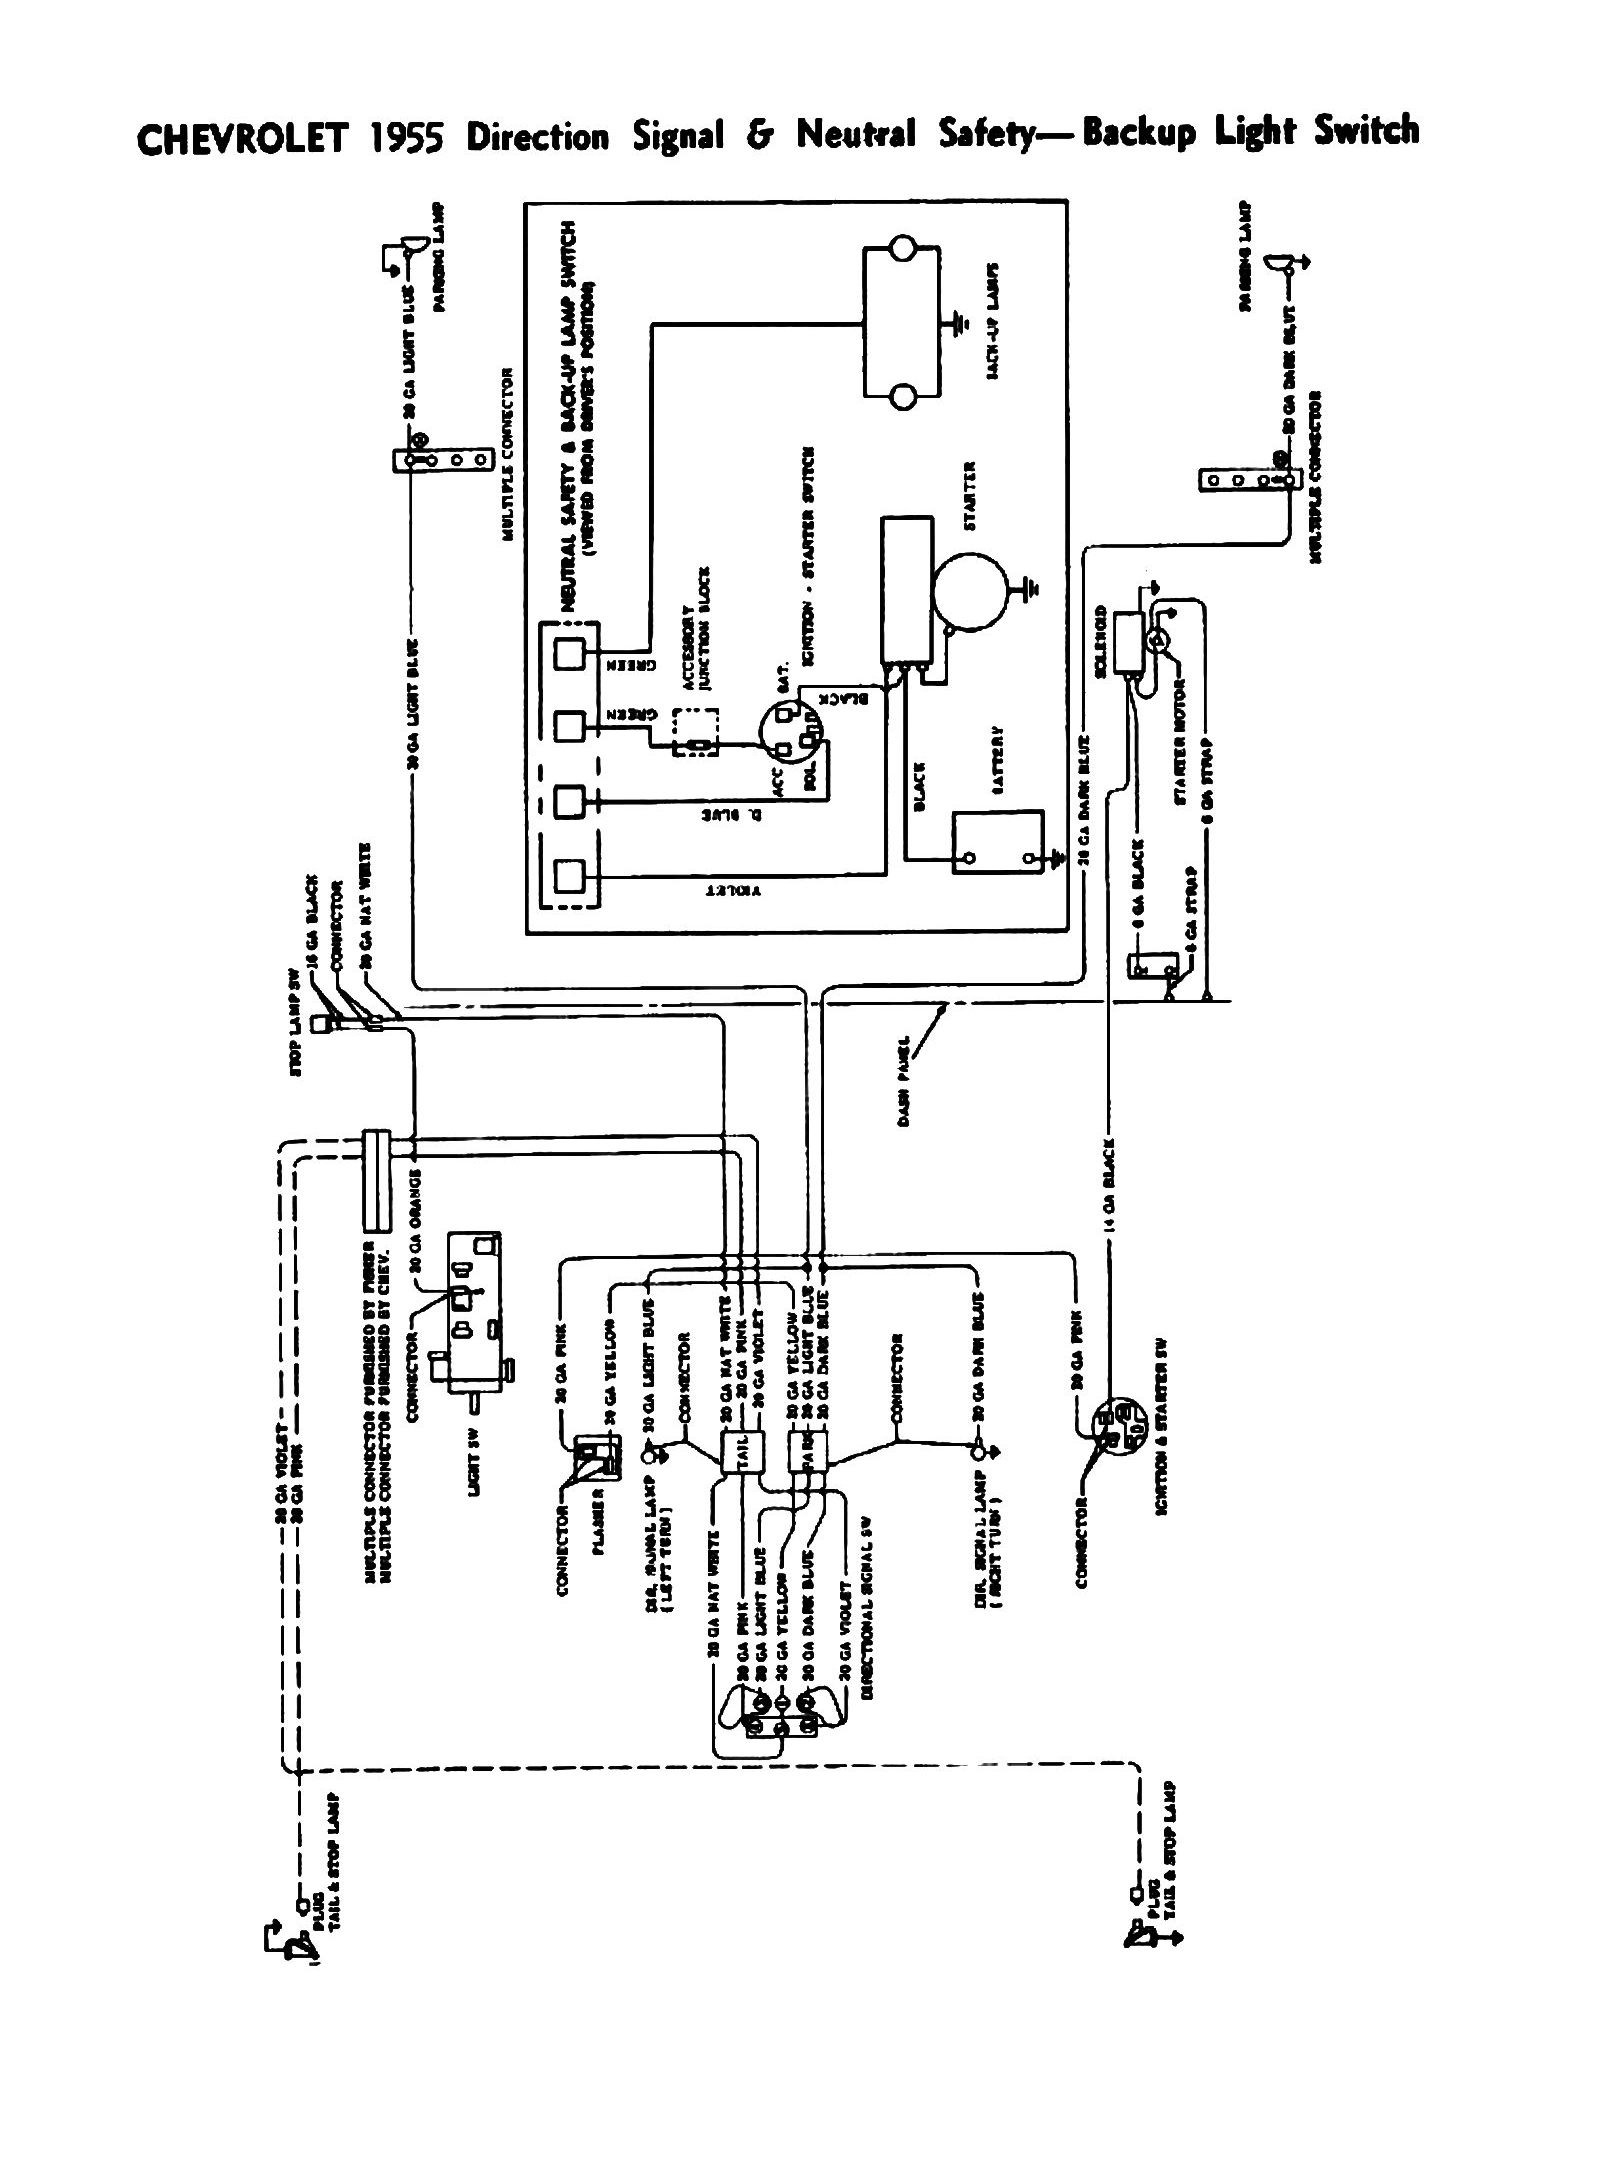 painless wiring for 1957 chevy wiring library diagram h7 rh 14 arew tpk diningroom de